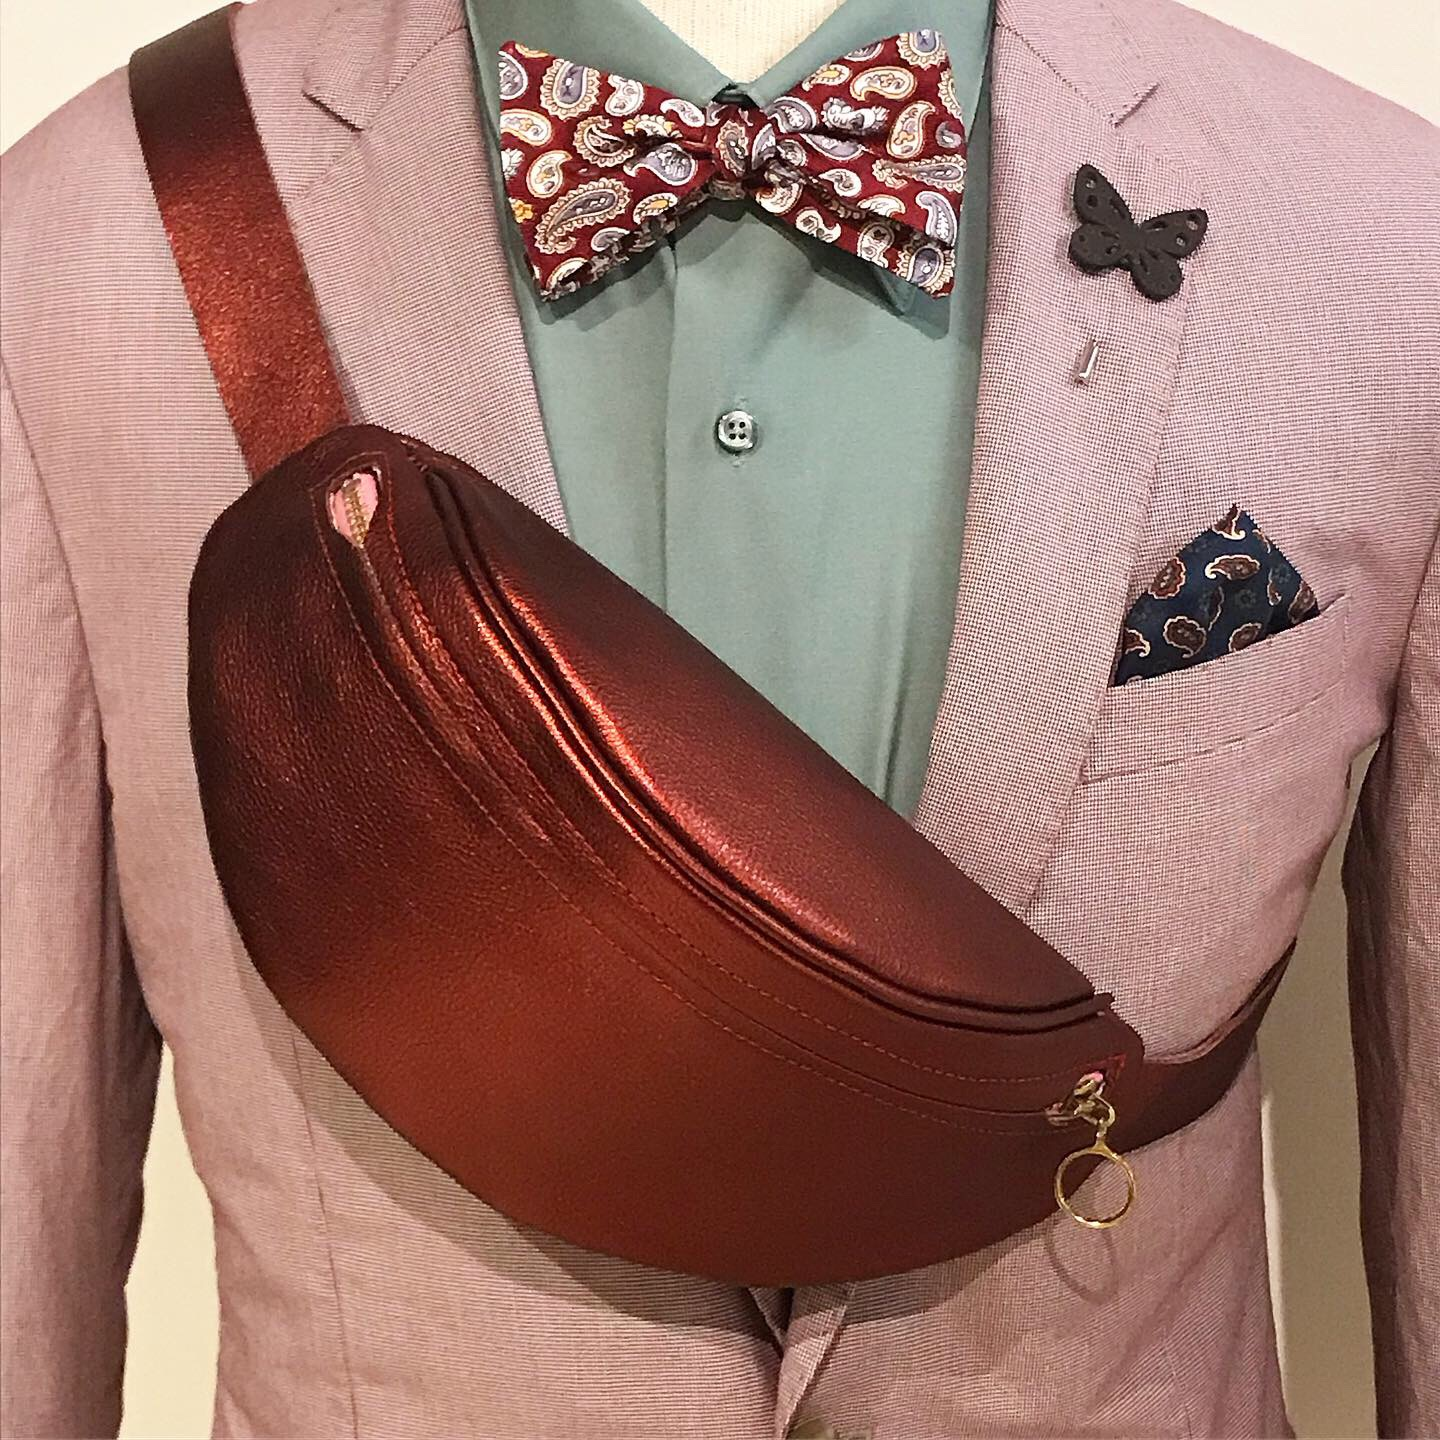 Closeup of a cross-body bag on a mannequin wearing a suit and bowtie